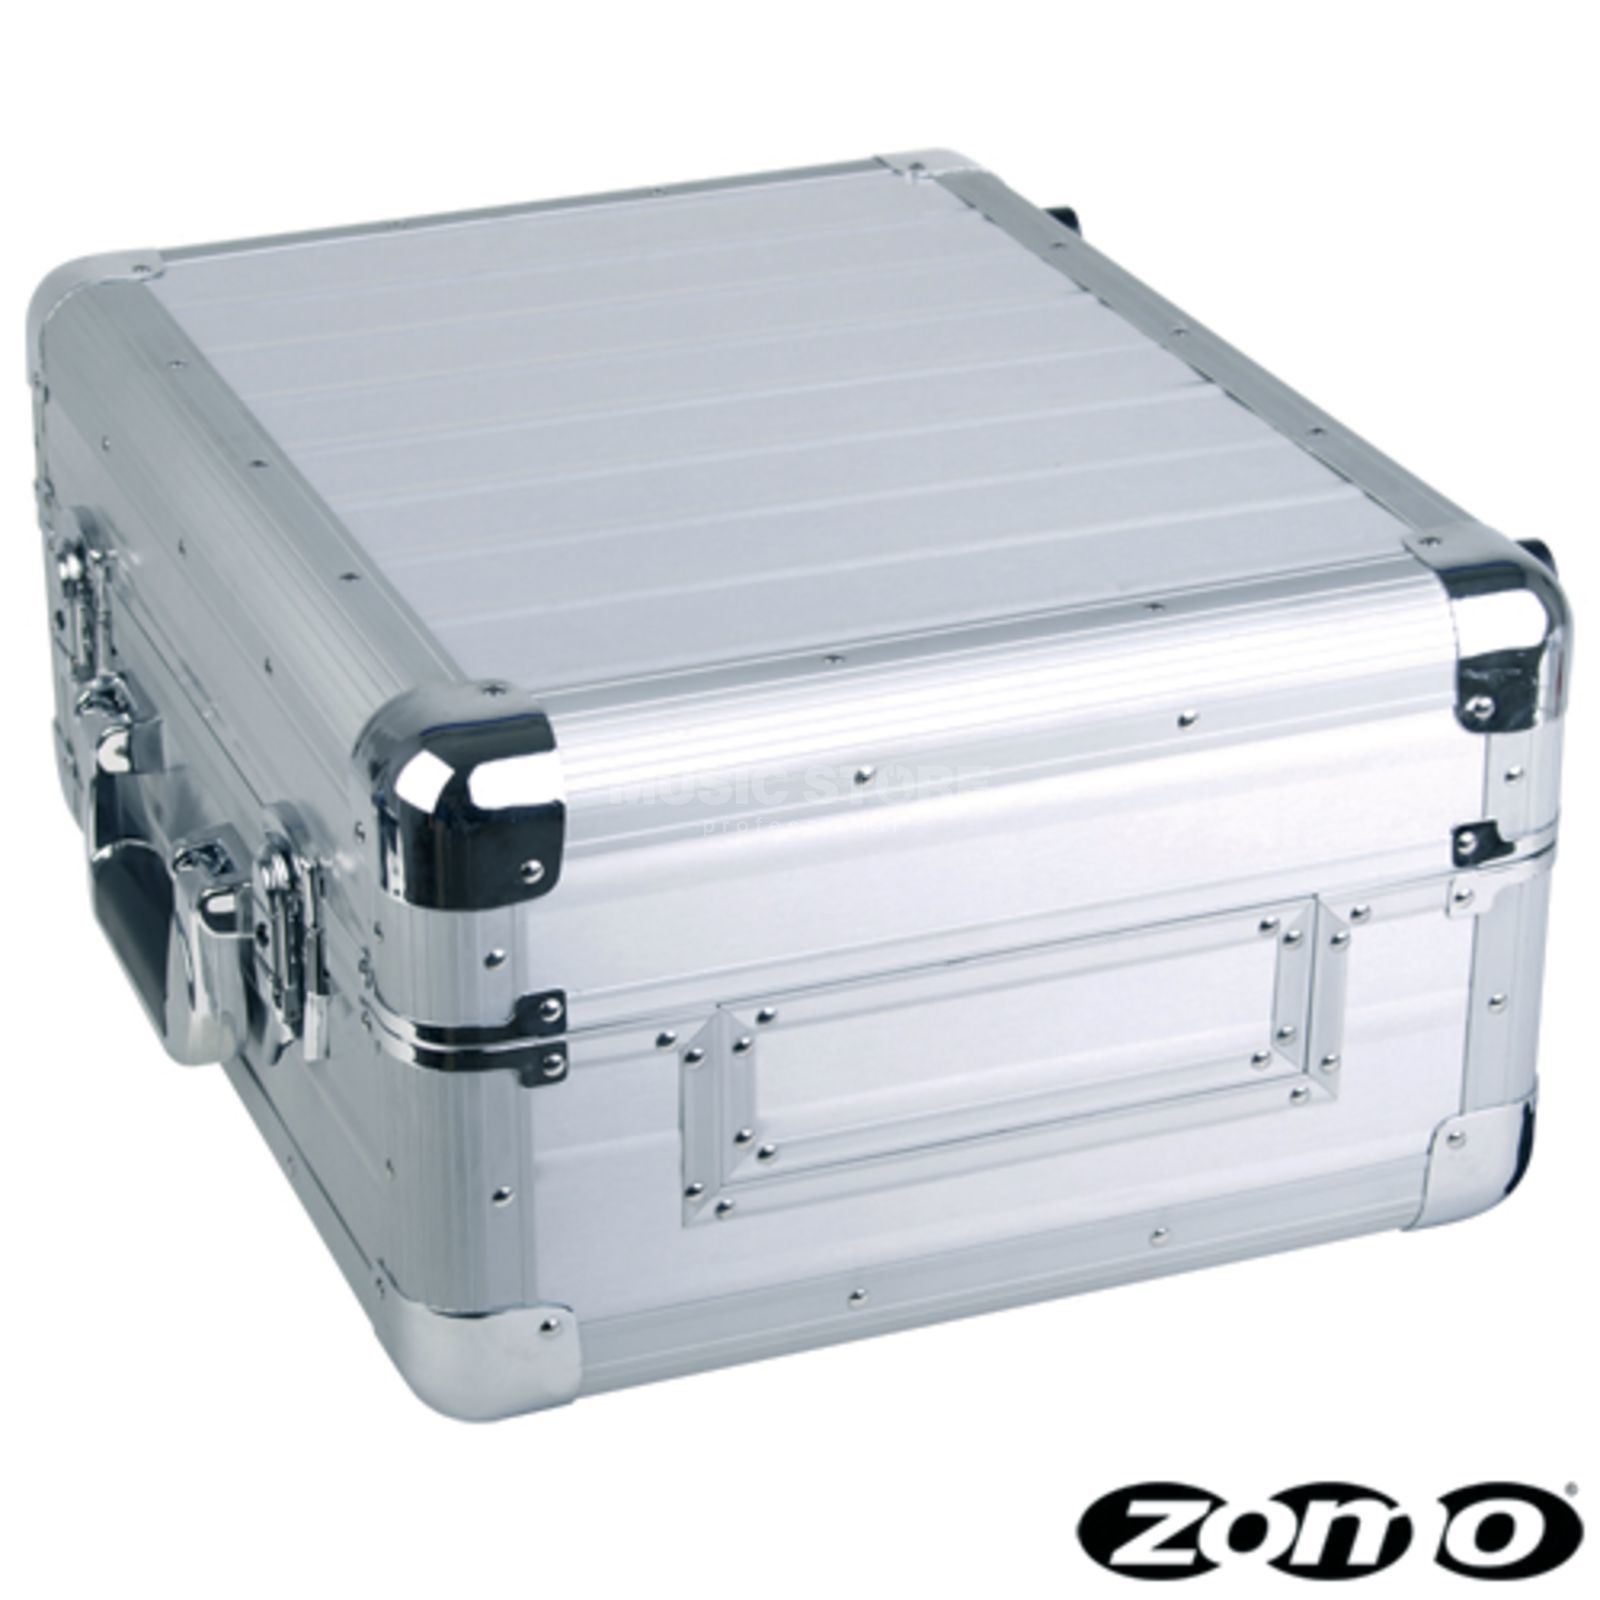 "Zomo Universal Case CDJ-1 XT silver for CD-Player / 12"" Mixer Immagine prodotto"